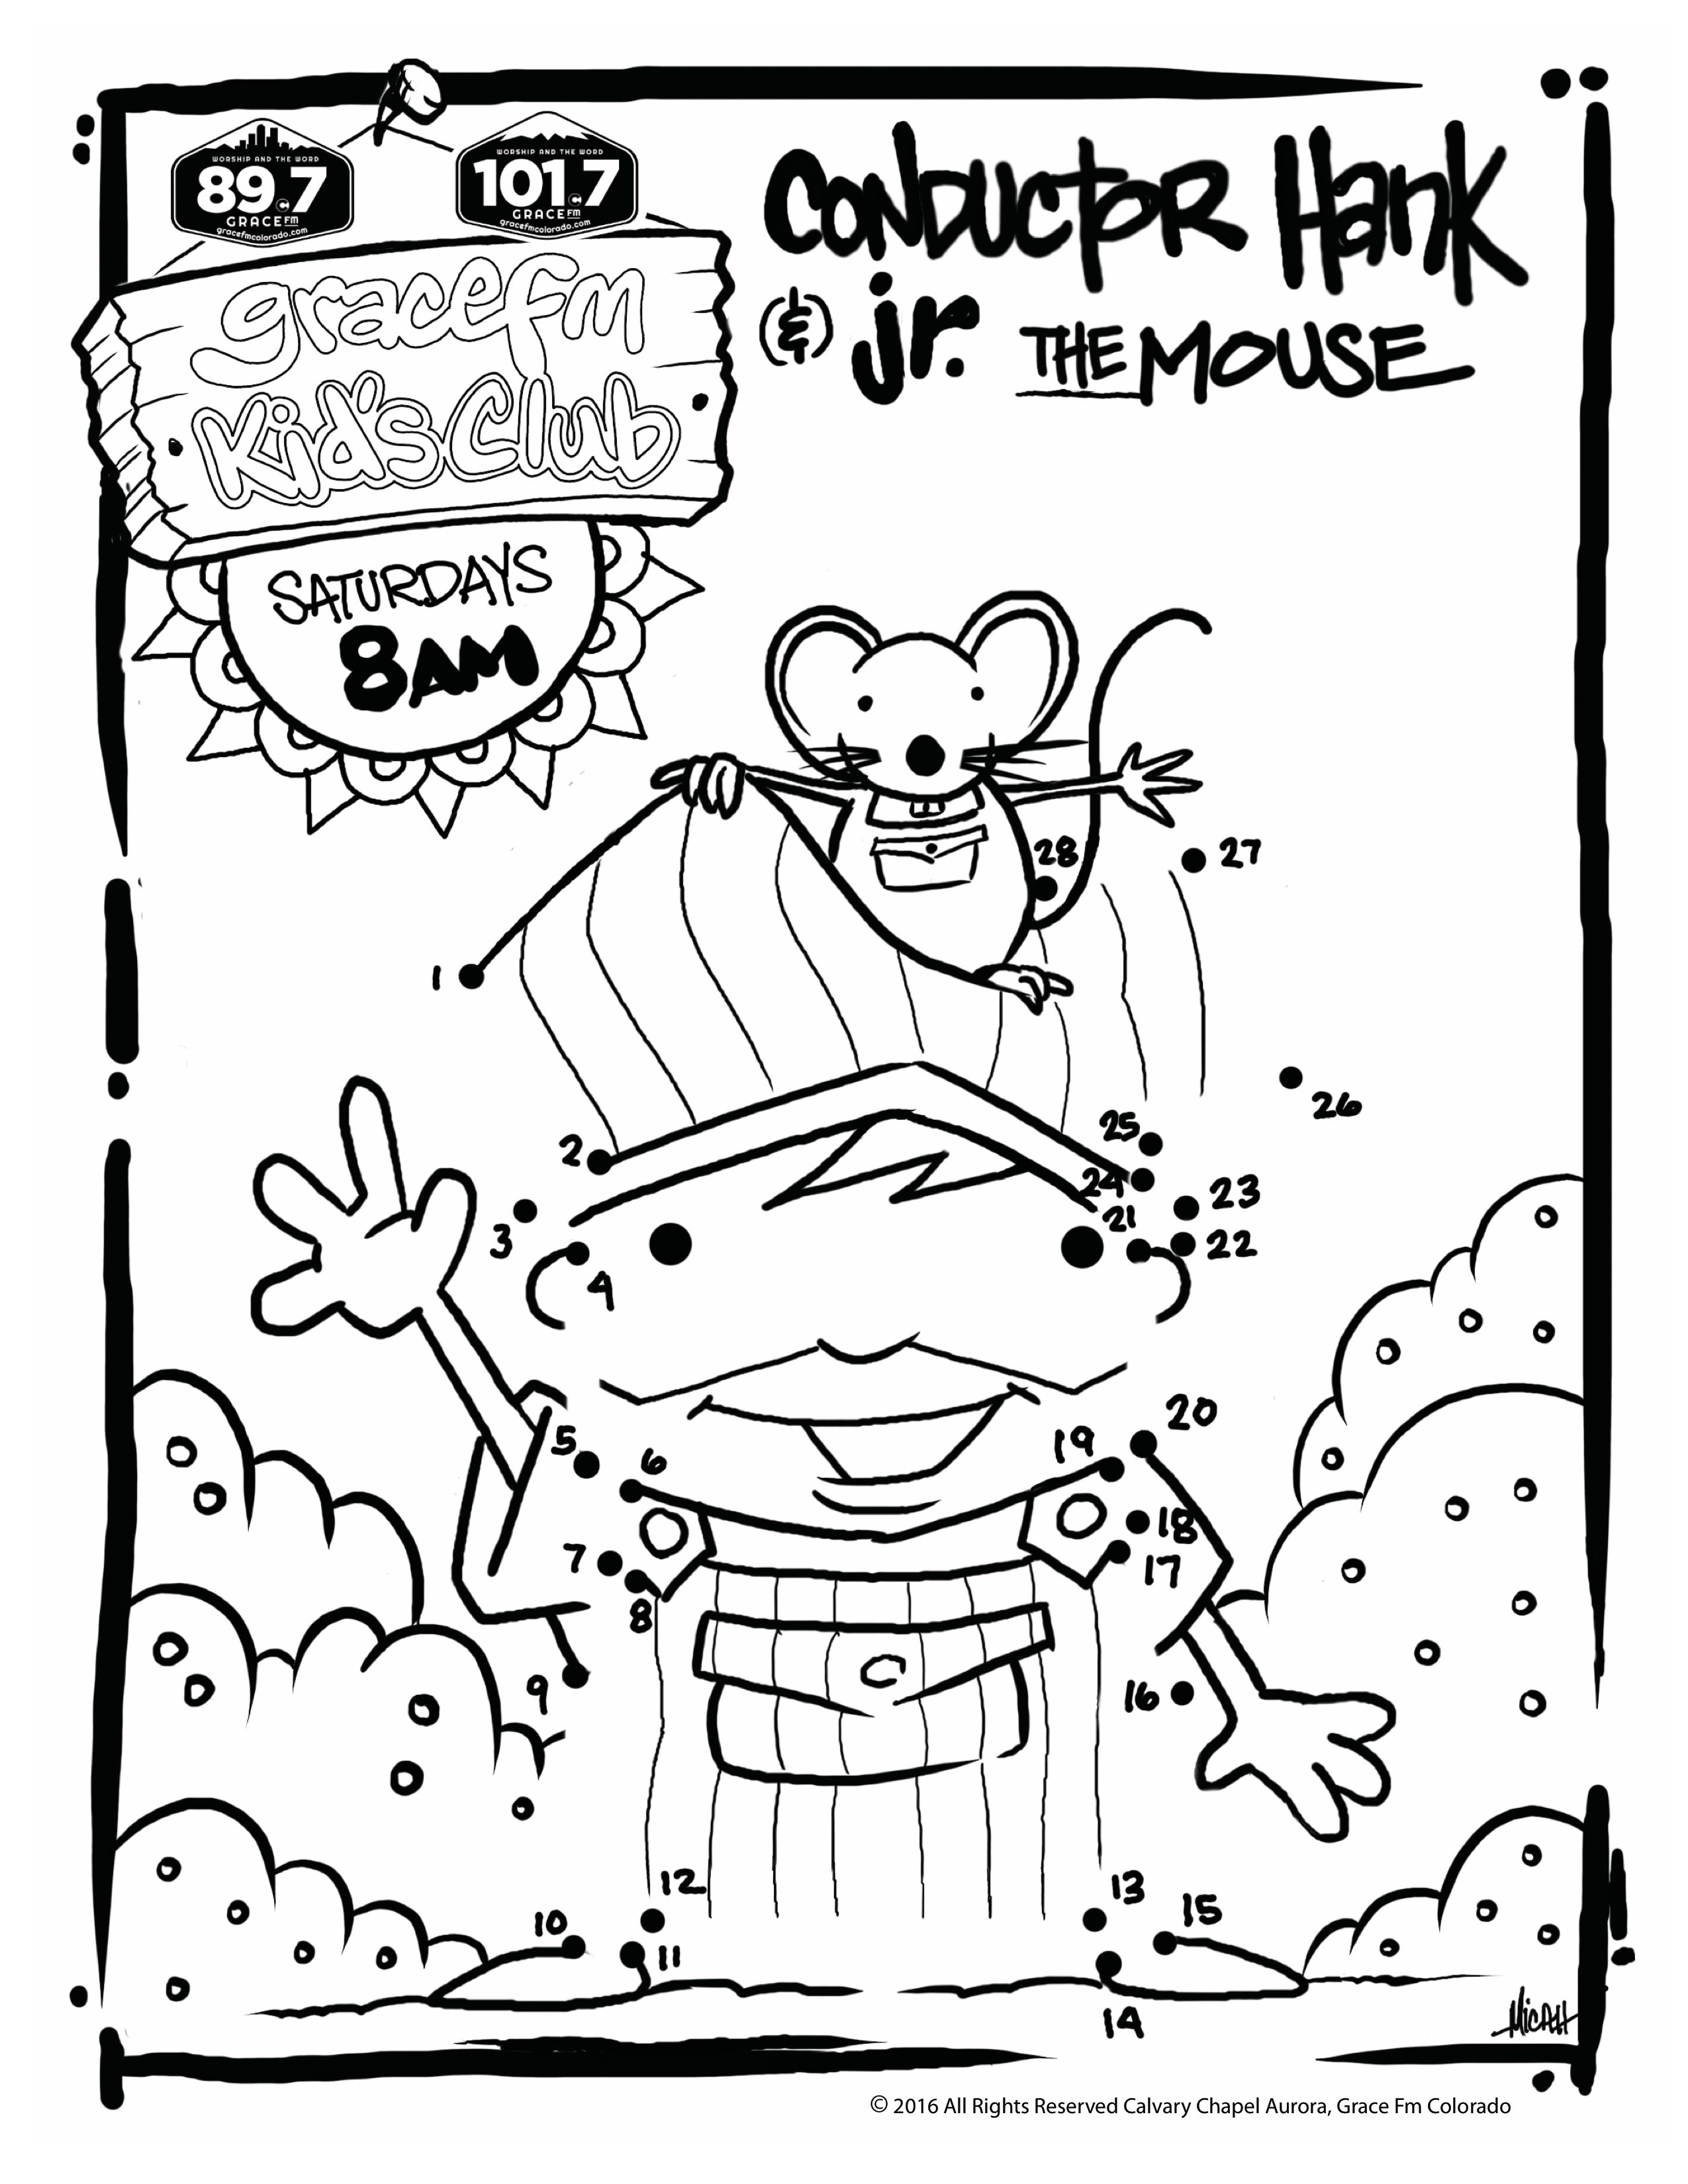 Gracefm Has A Kid S Program On Saturday Mornings At 8am Here Is A Drawing I Did Of Some Characters Of The Ch Programming For Kids Coloring Books Gospel Tracts